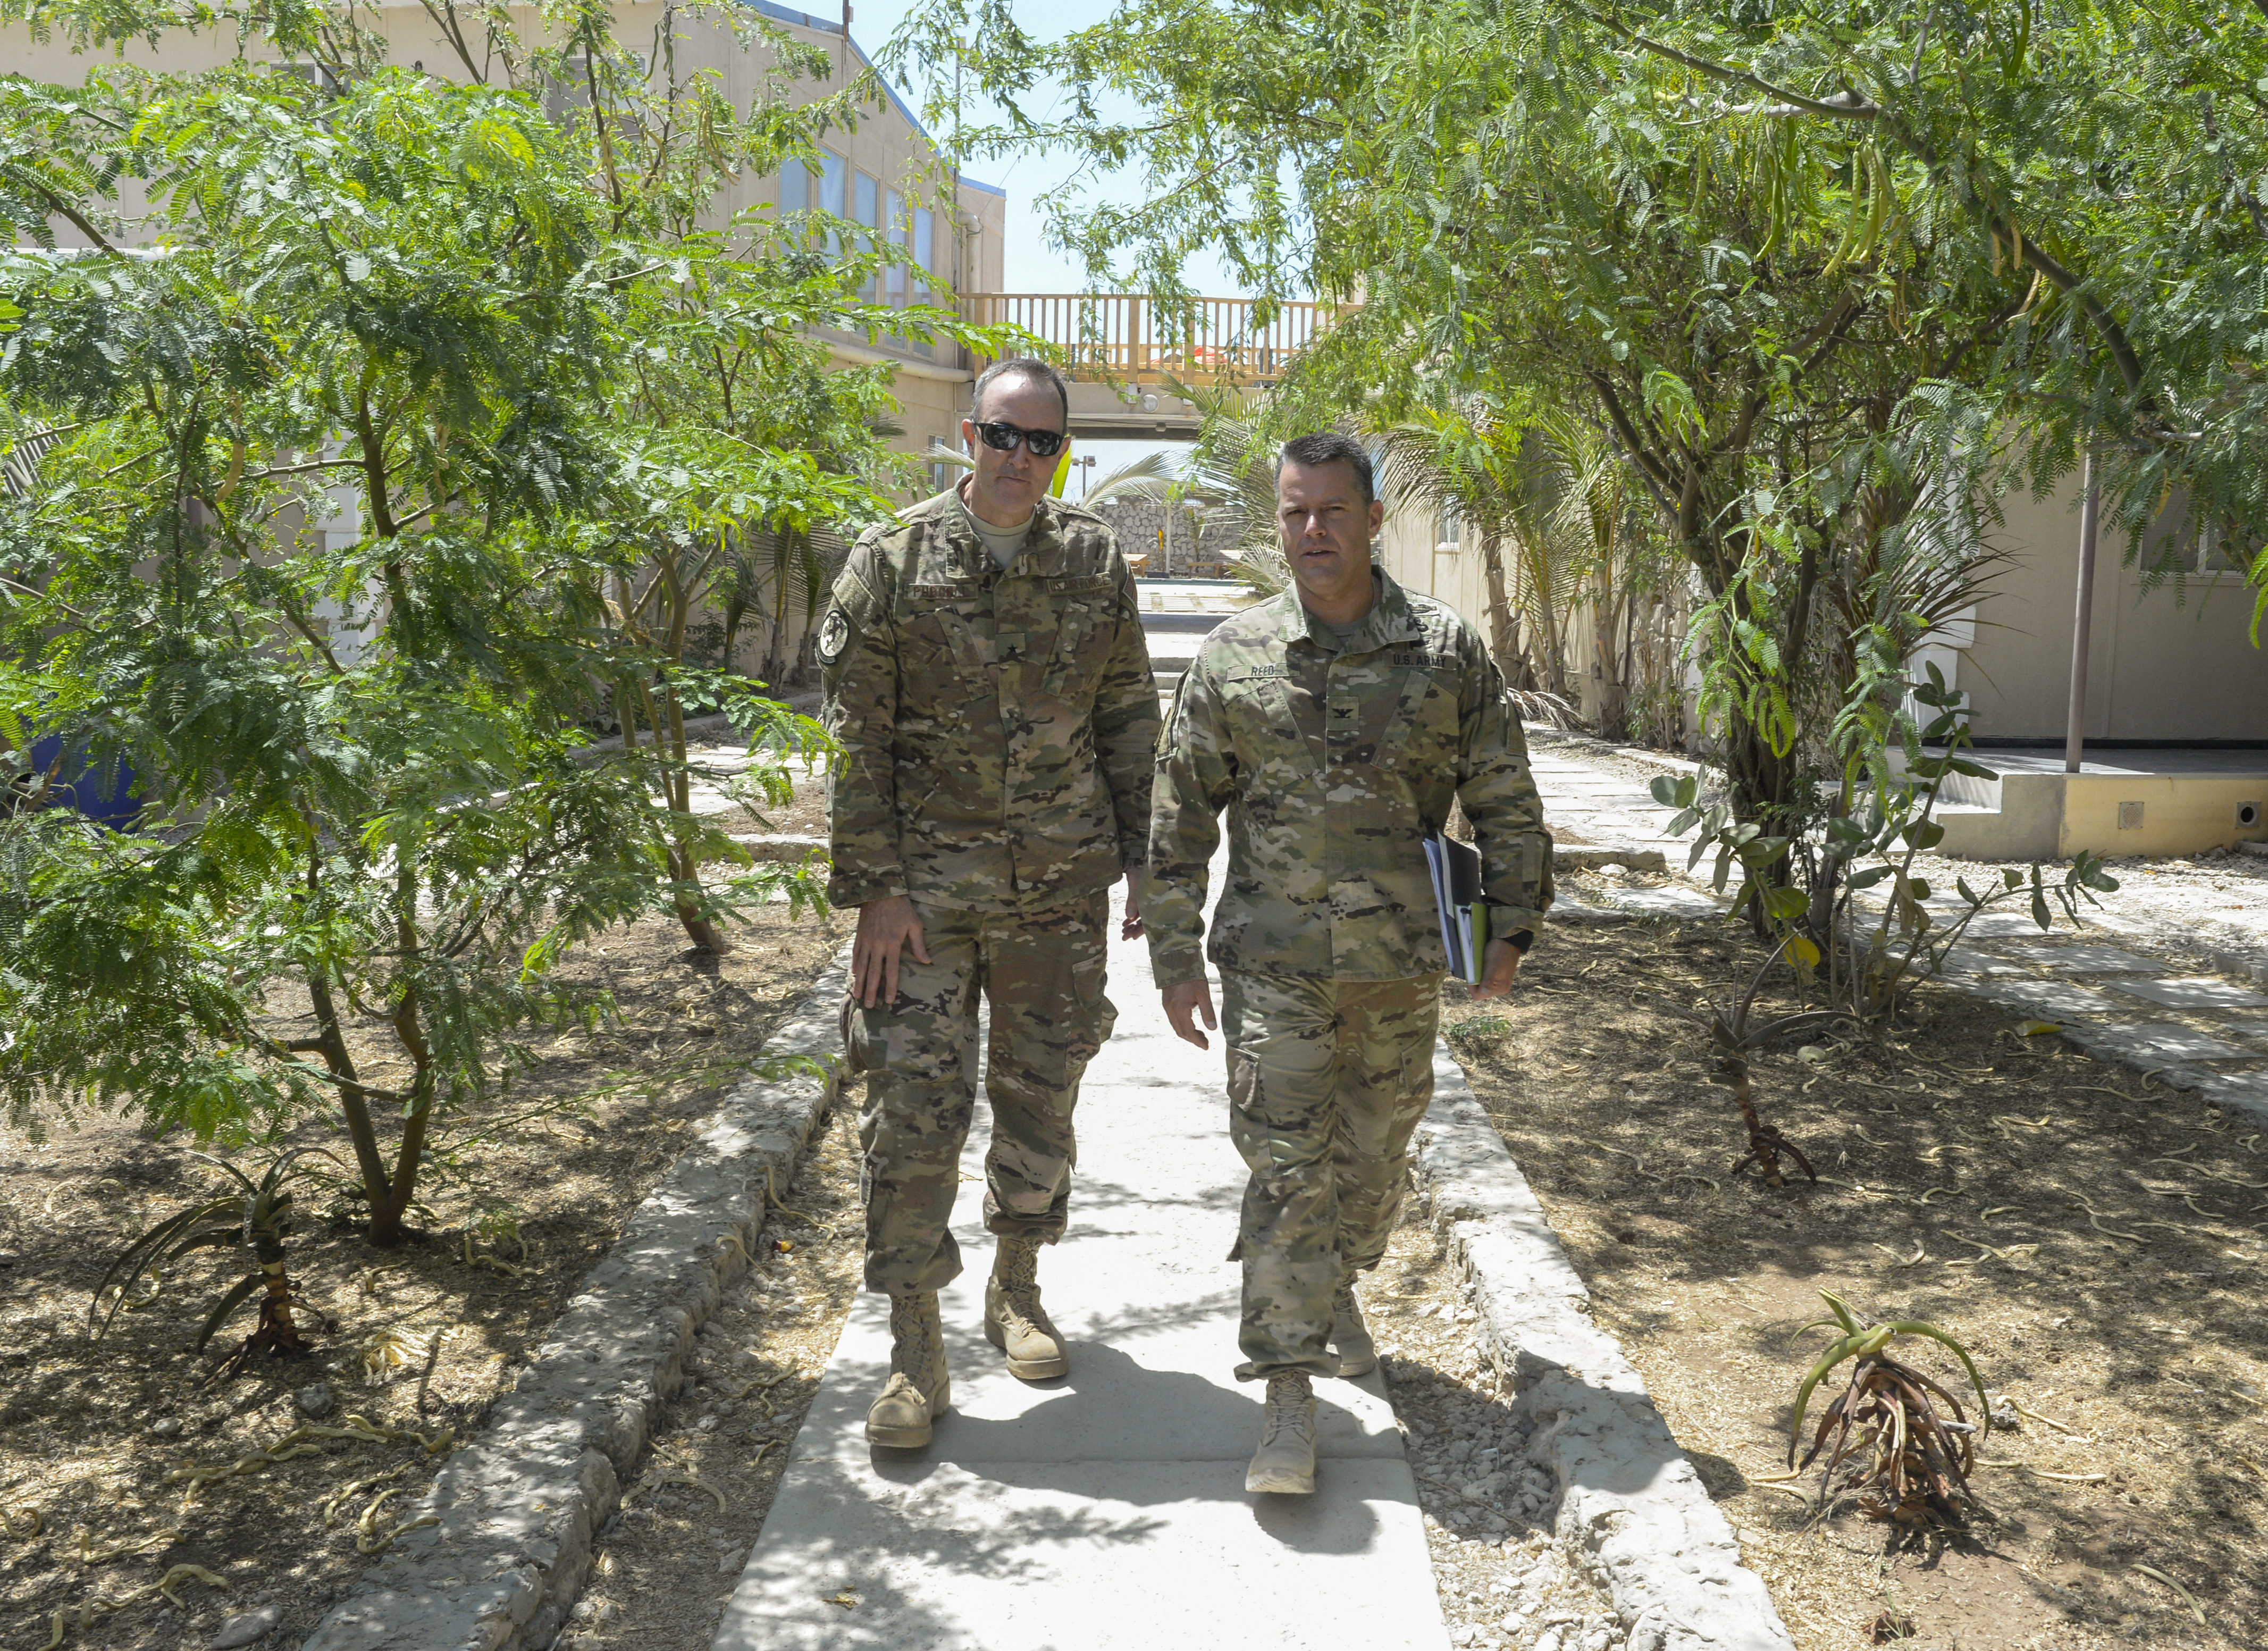 U.S. Air Force Brig. Gen. Phil Purcell, Combined Joint Task Force-Horn of Africa deputy commander, talks with U.S. Army Col. Kyle Reed, Military Coordination Cell Mogadishu director, in Mogadishu, Somalia, Mar. 15, 2017. Purcell travelled to Mogadishu to engage with various military leaders and foster relationships with key stakeholders in the region.(U.S. Air National Guard photo by Christian M. Jadot)